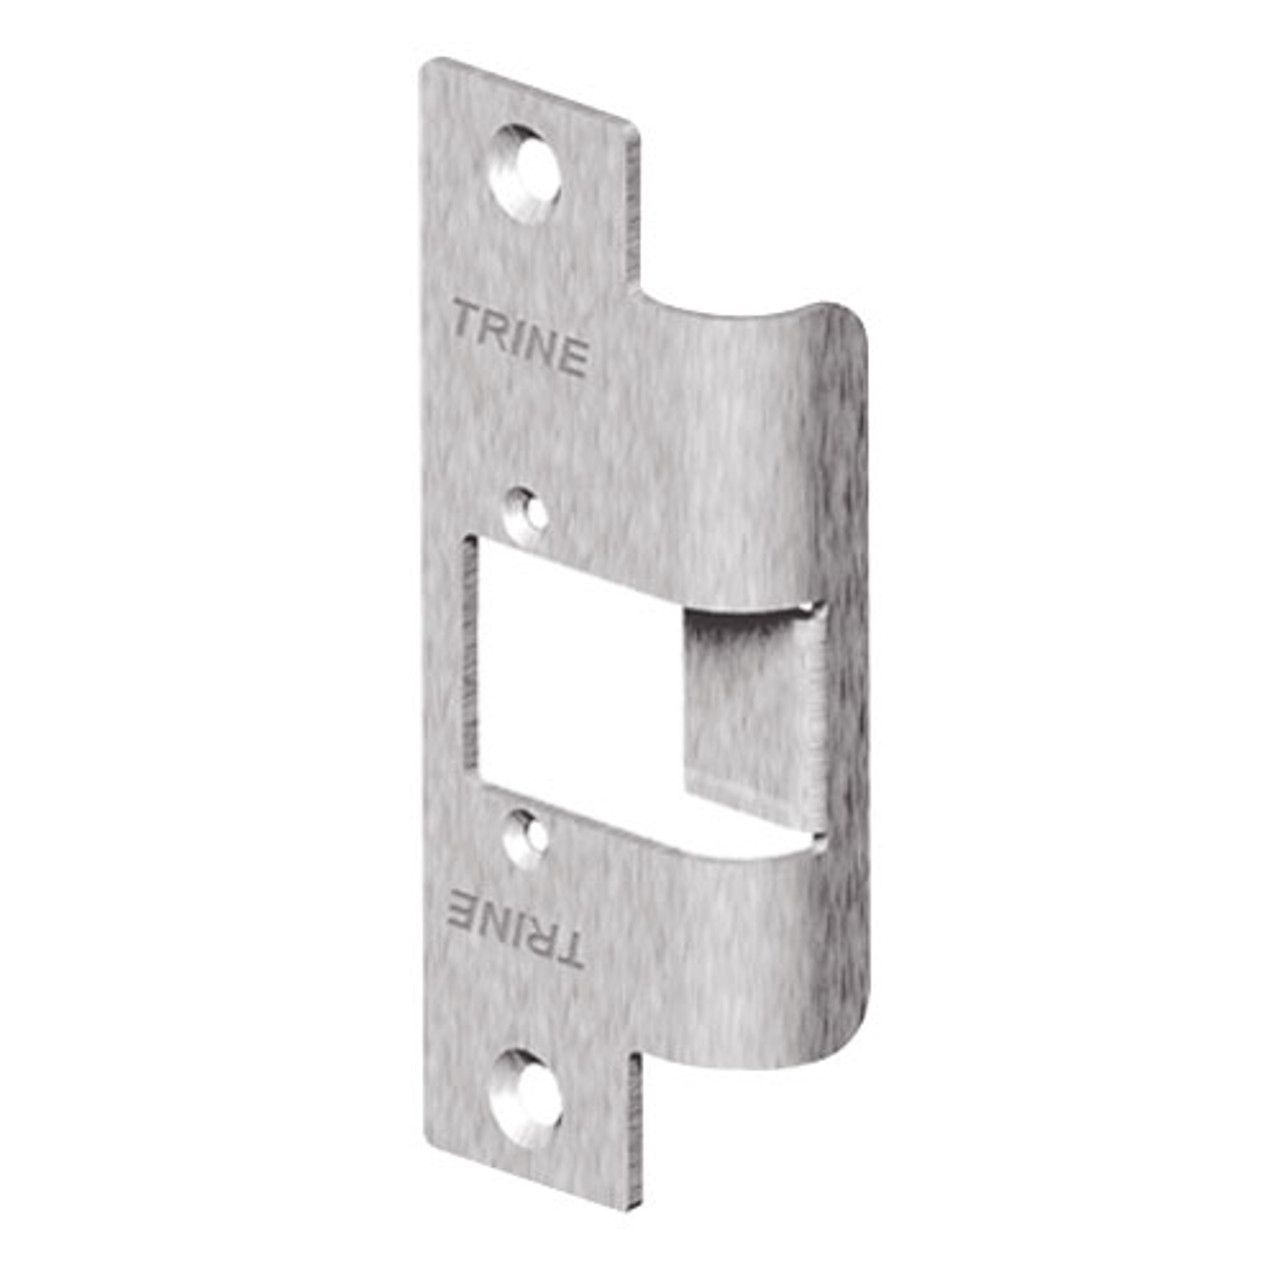 478RO-US32D Trine 3000 Series Faceplate in Satin Stainless Steel Finish